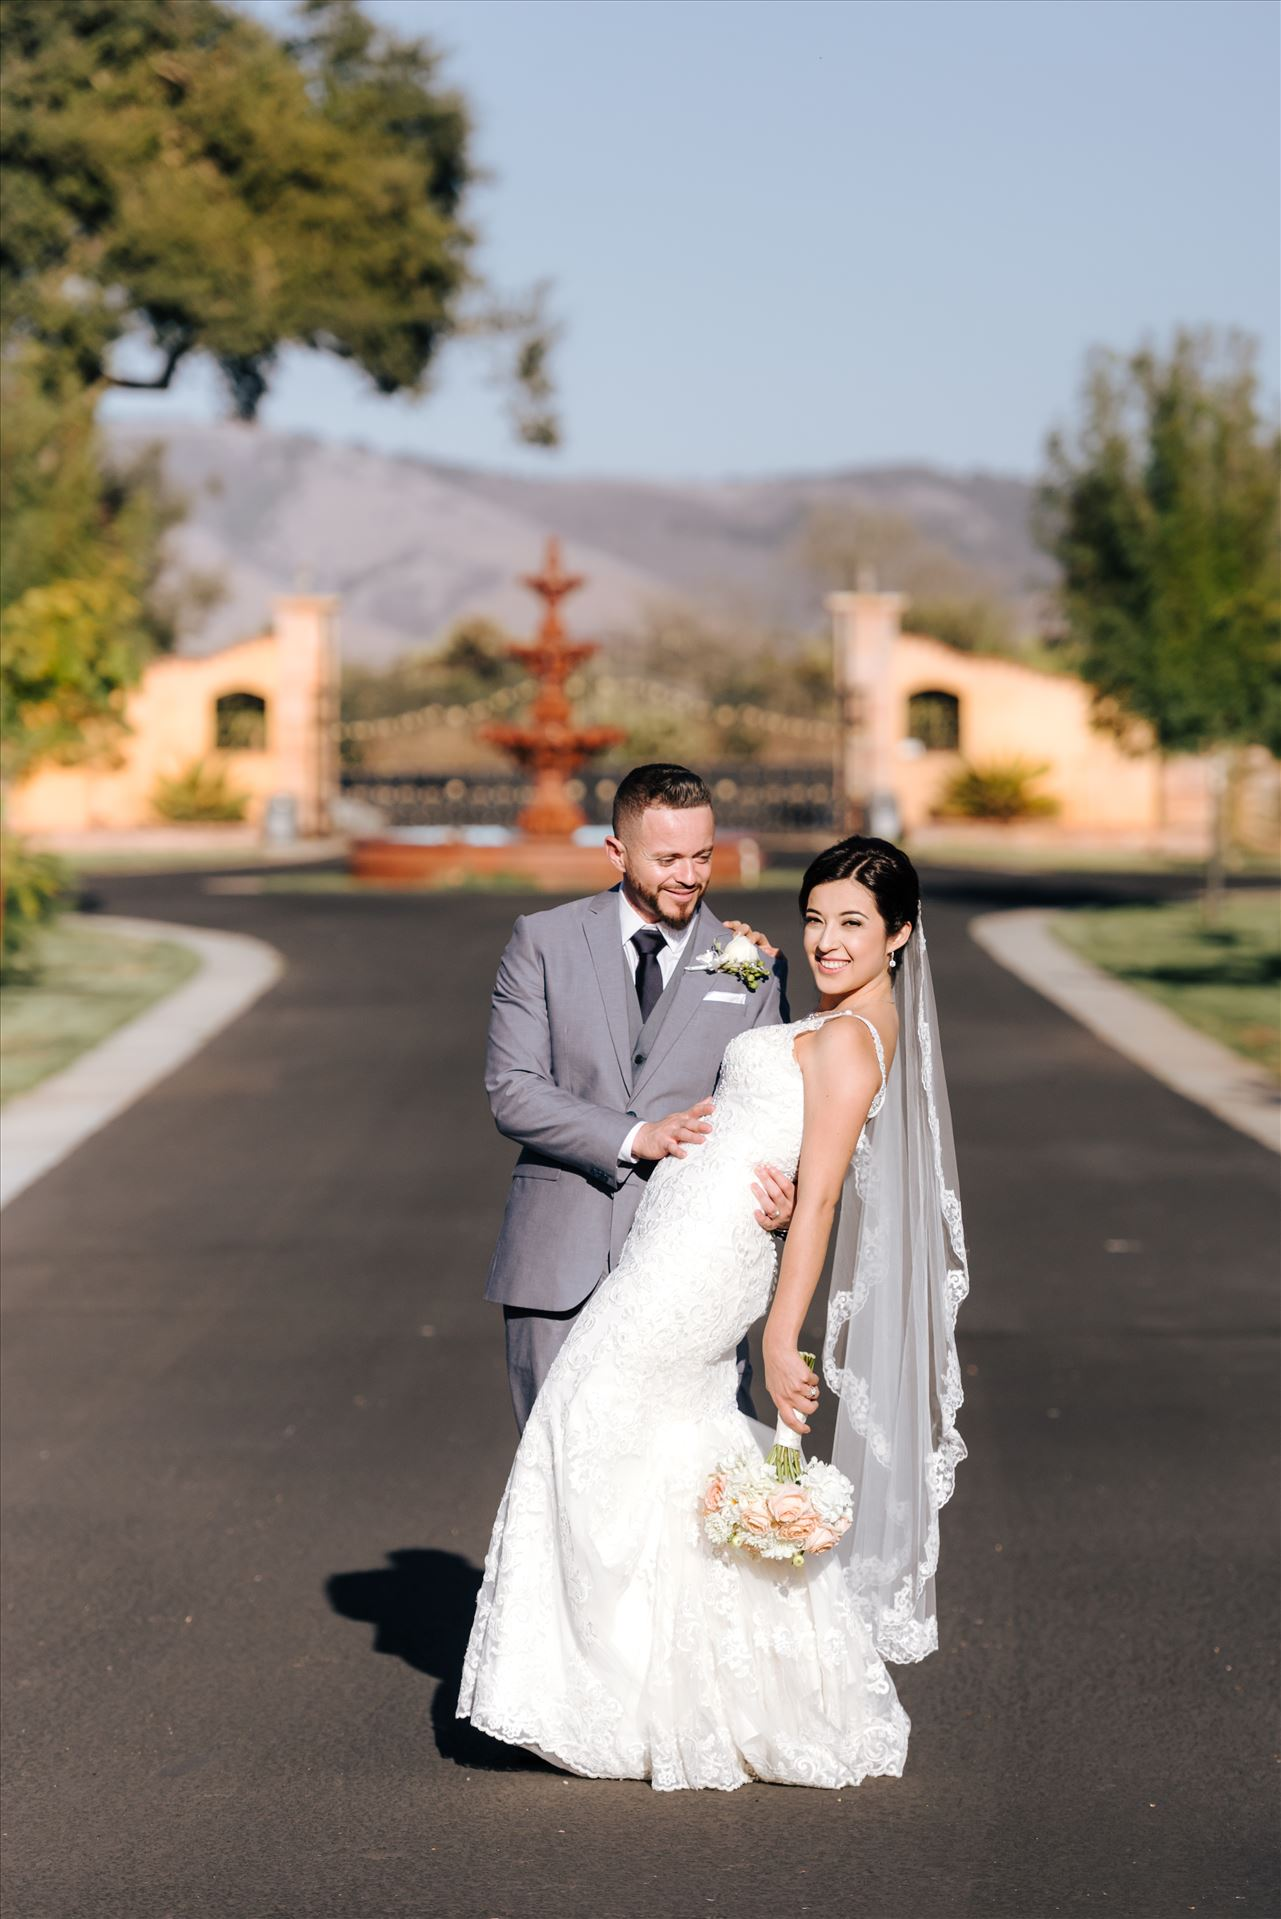 FW-5336.JPGArroyo Grande California Country Chic and Elegant wedding by Mirror's Edge Photography, San Luis Obispo County Wedding Photographer.  Bride and Groom at A&C Ranch.